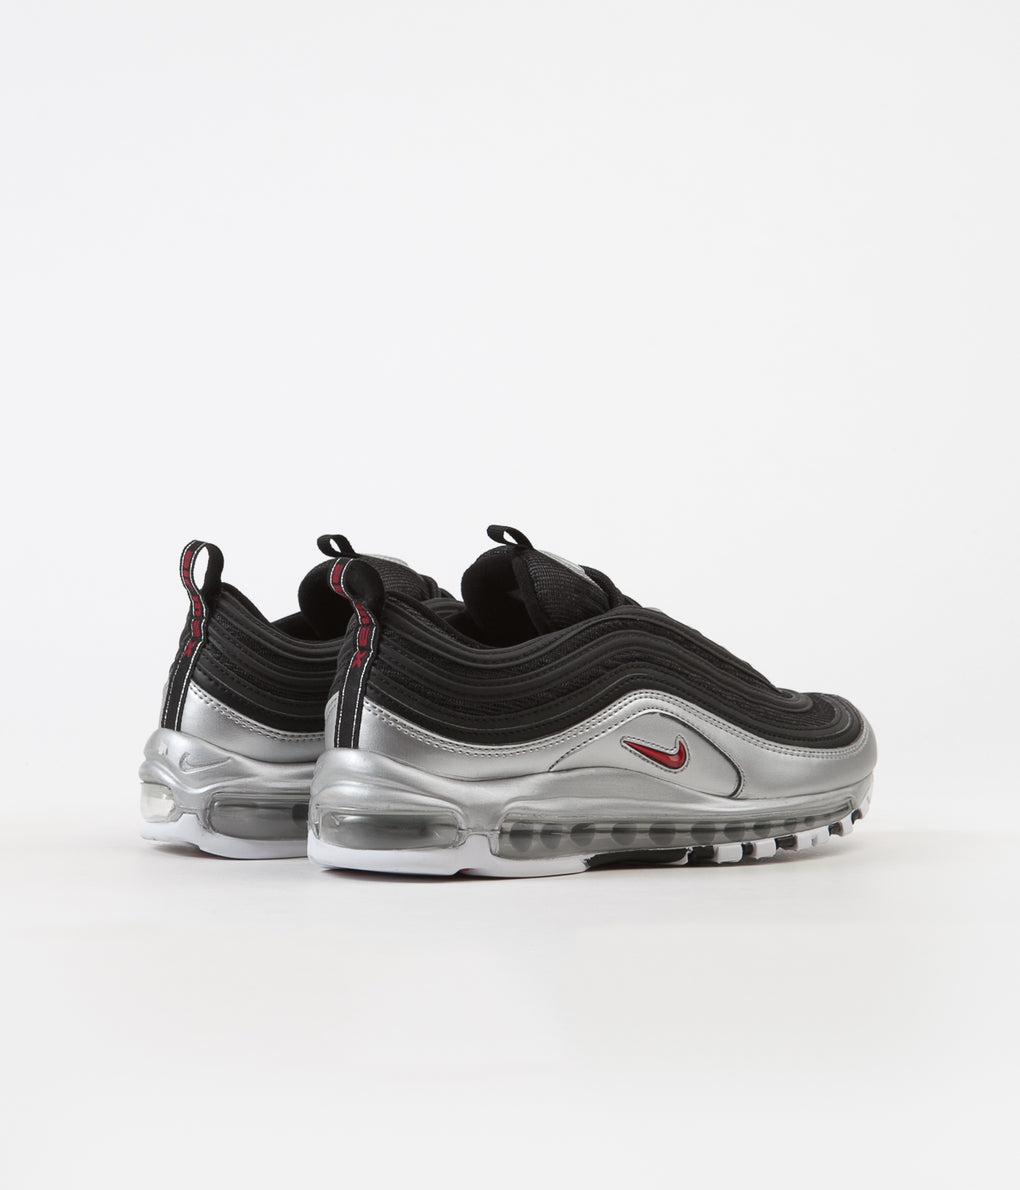 Nike Air Max 97 QS Shoes - Black / Varsity Red - Metallic Silver - White